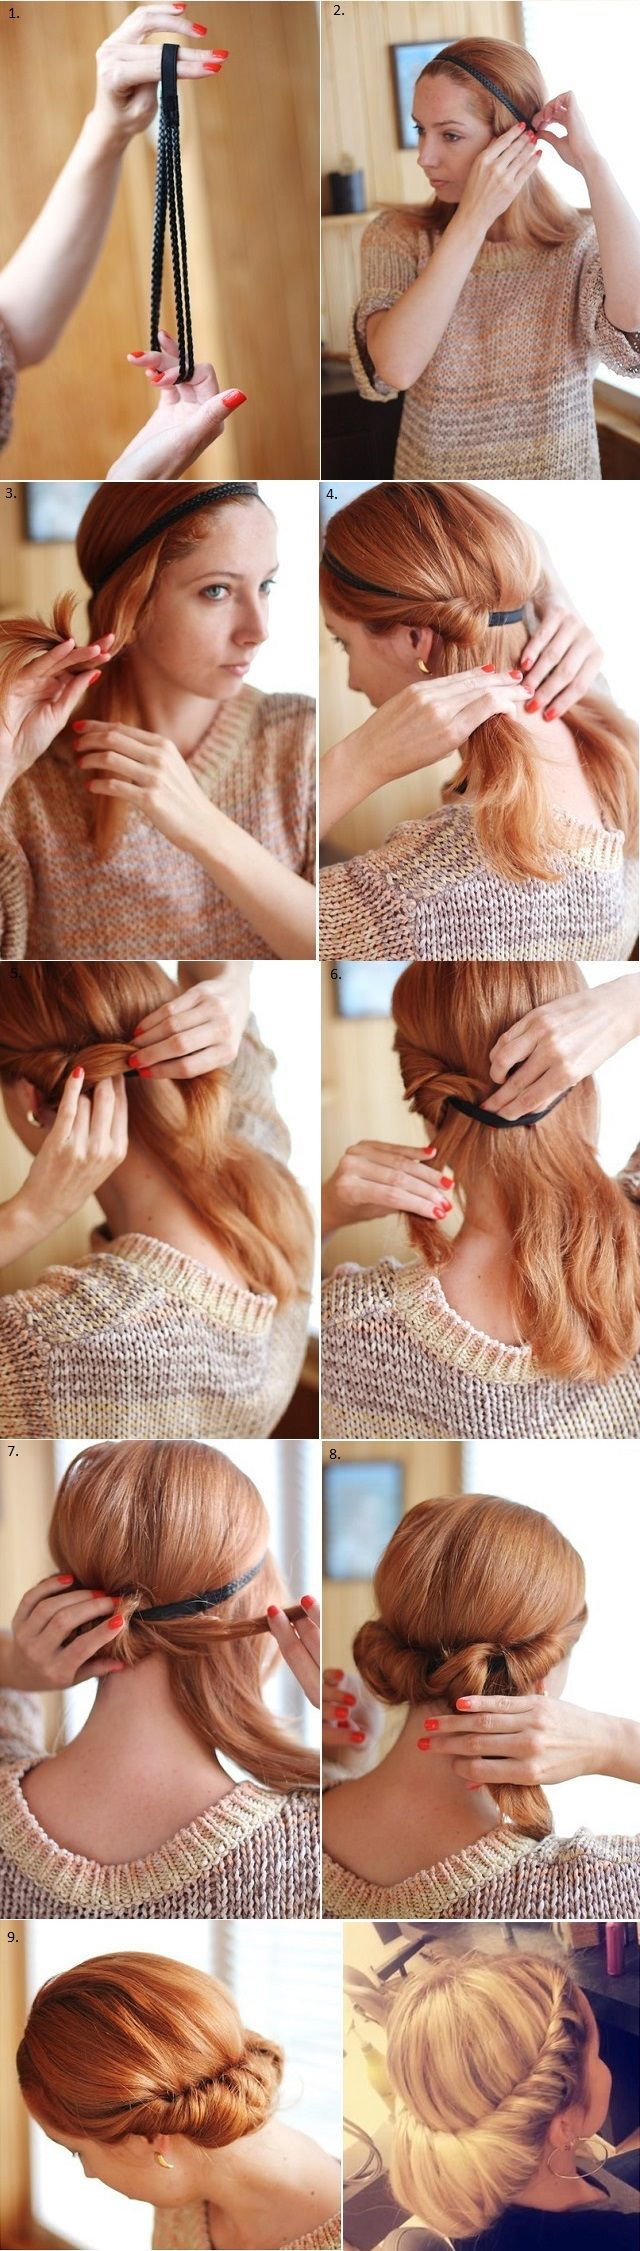 Ringlet Headband Hairstyle - really easy and fast to do! I think me and my VERY limited hair styling skills can manage this one.